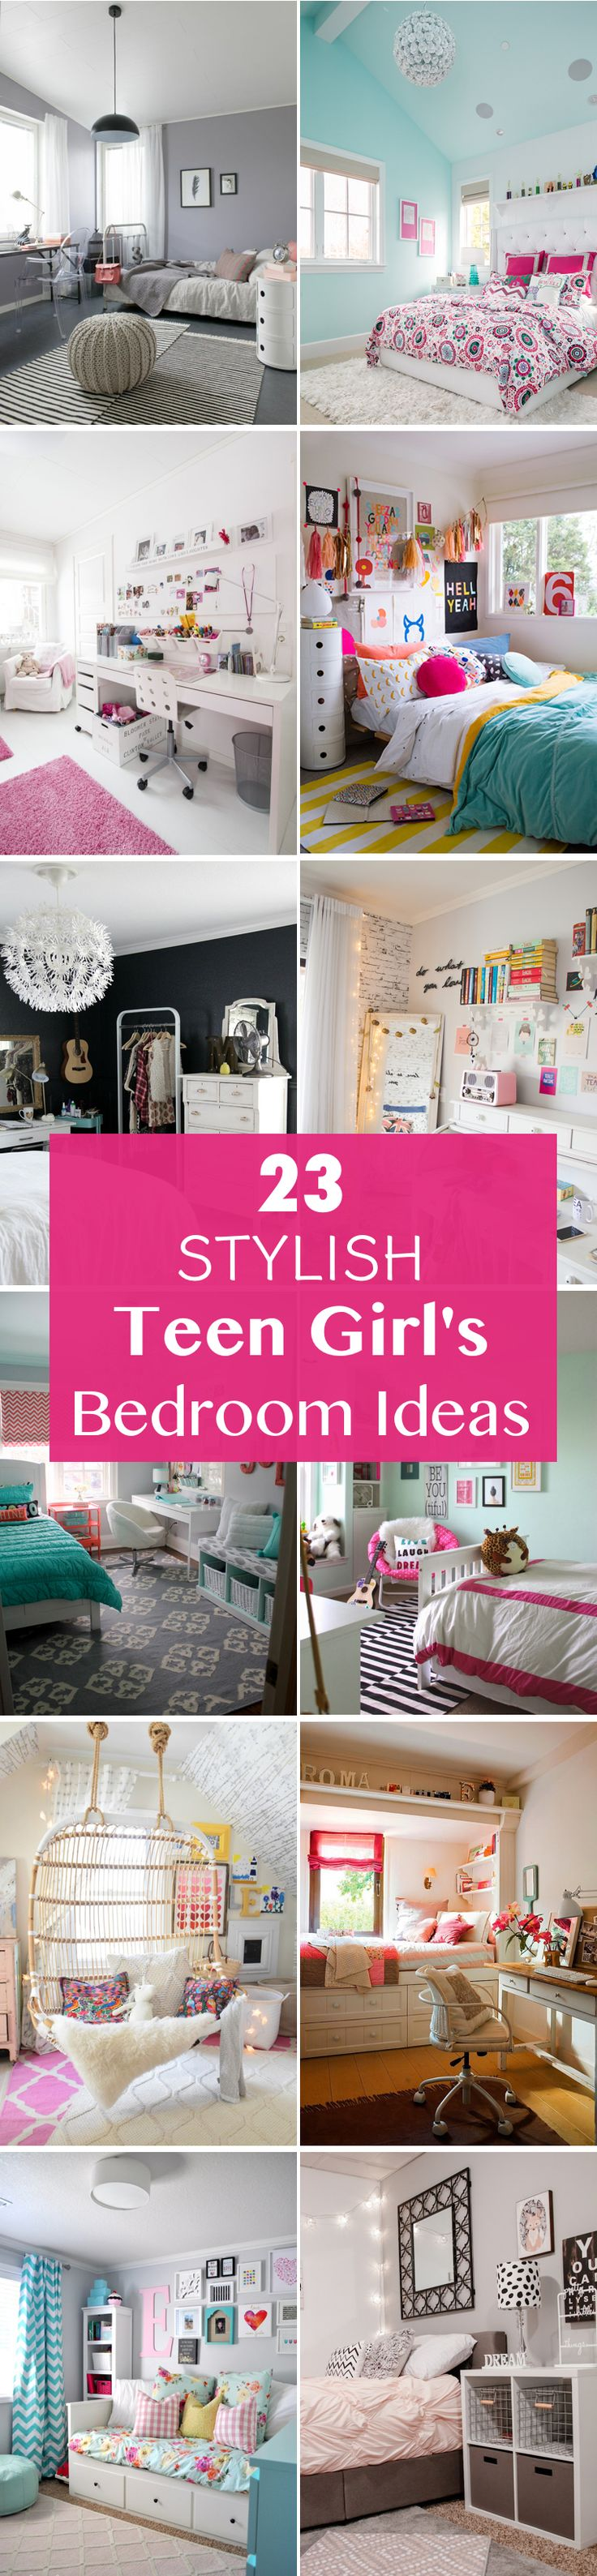 23 Stylish Teen Girl s Bedroom Ideas. Best 20  Teen bedroom designs ideas on Pinterest   Teen girl rooms